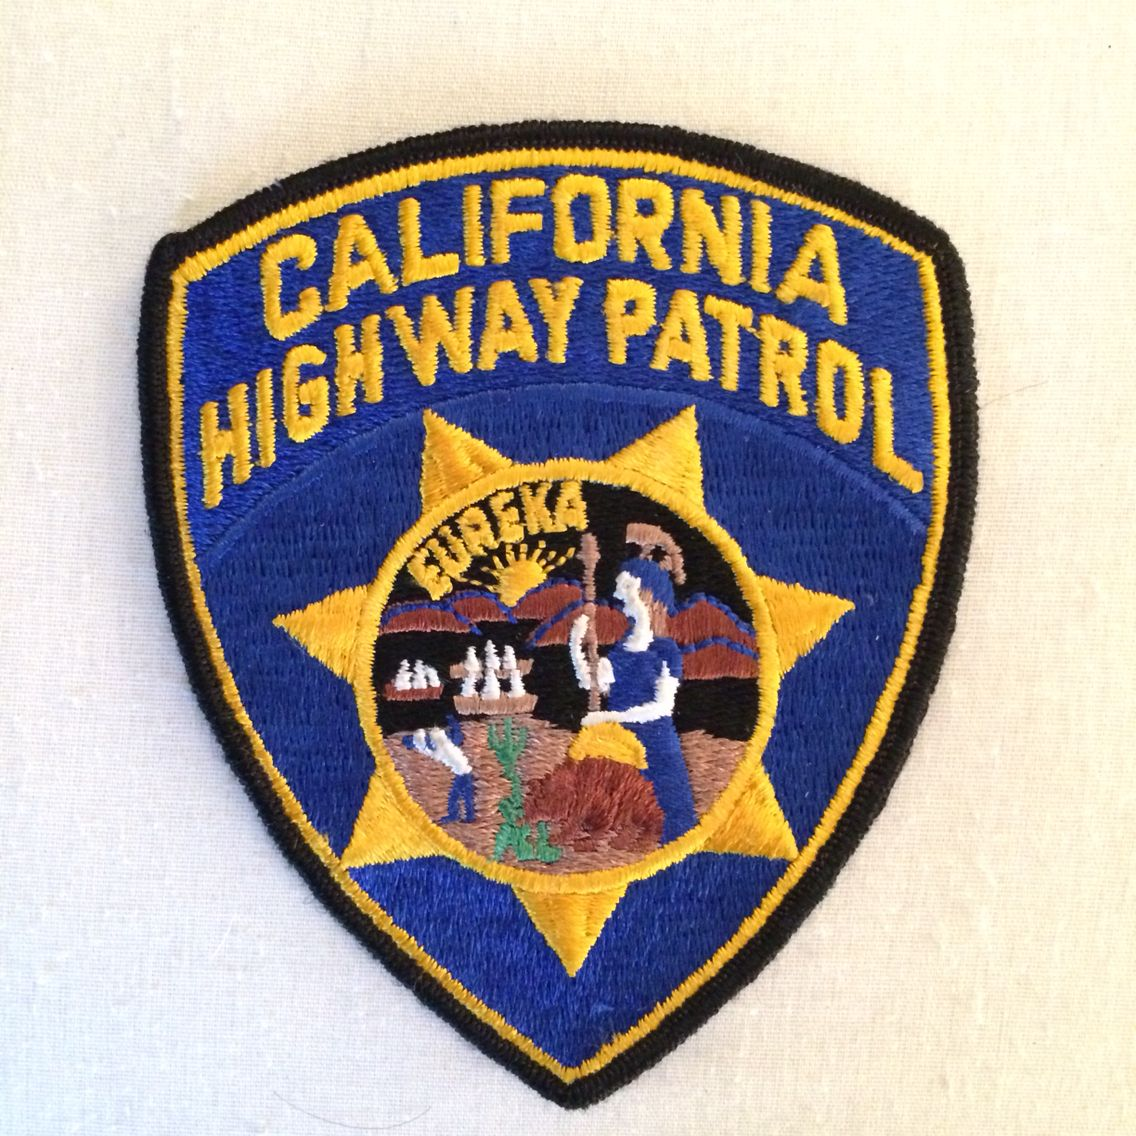 California Highway Patrol Police patches, California